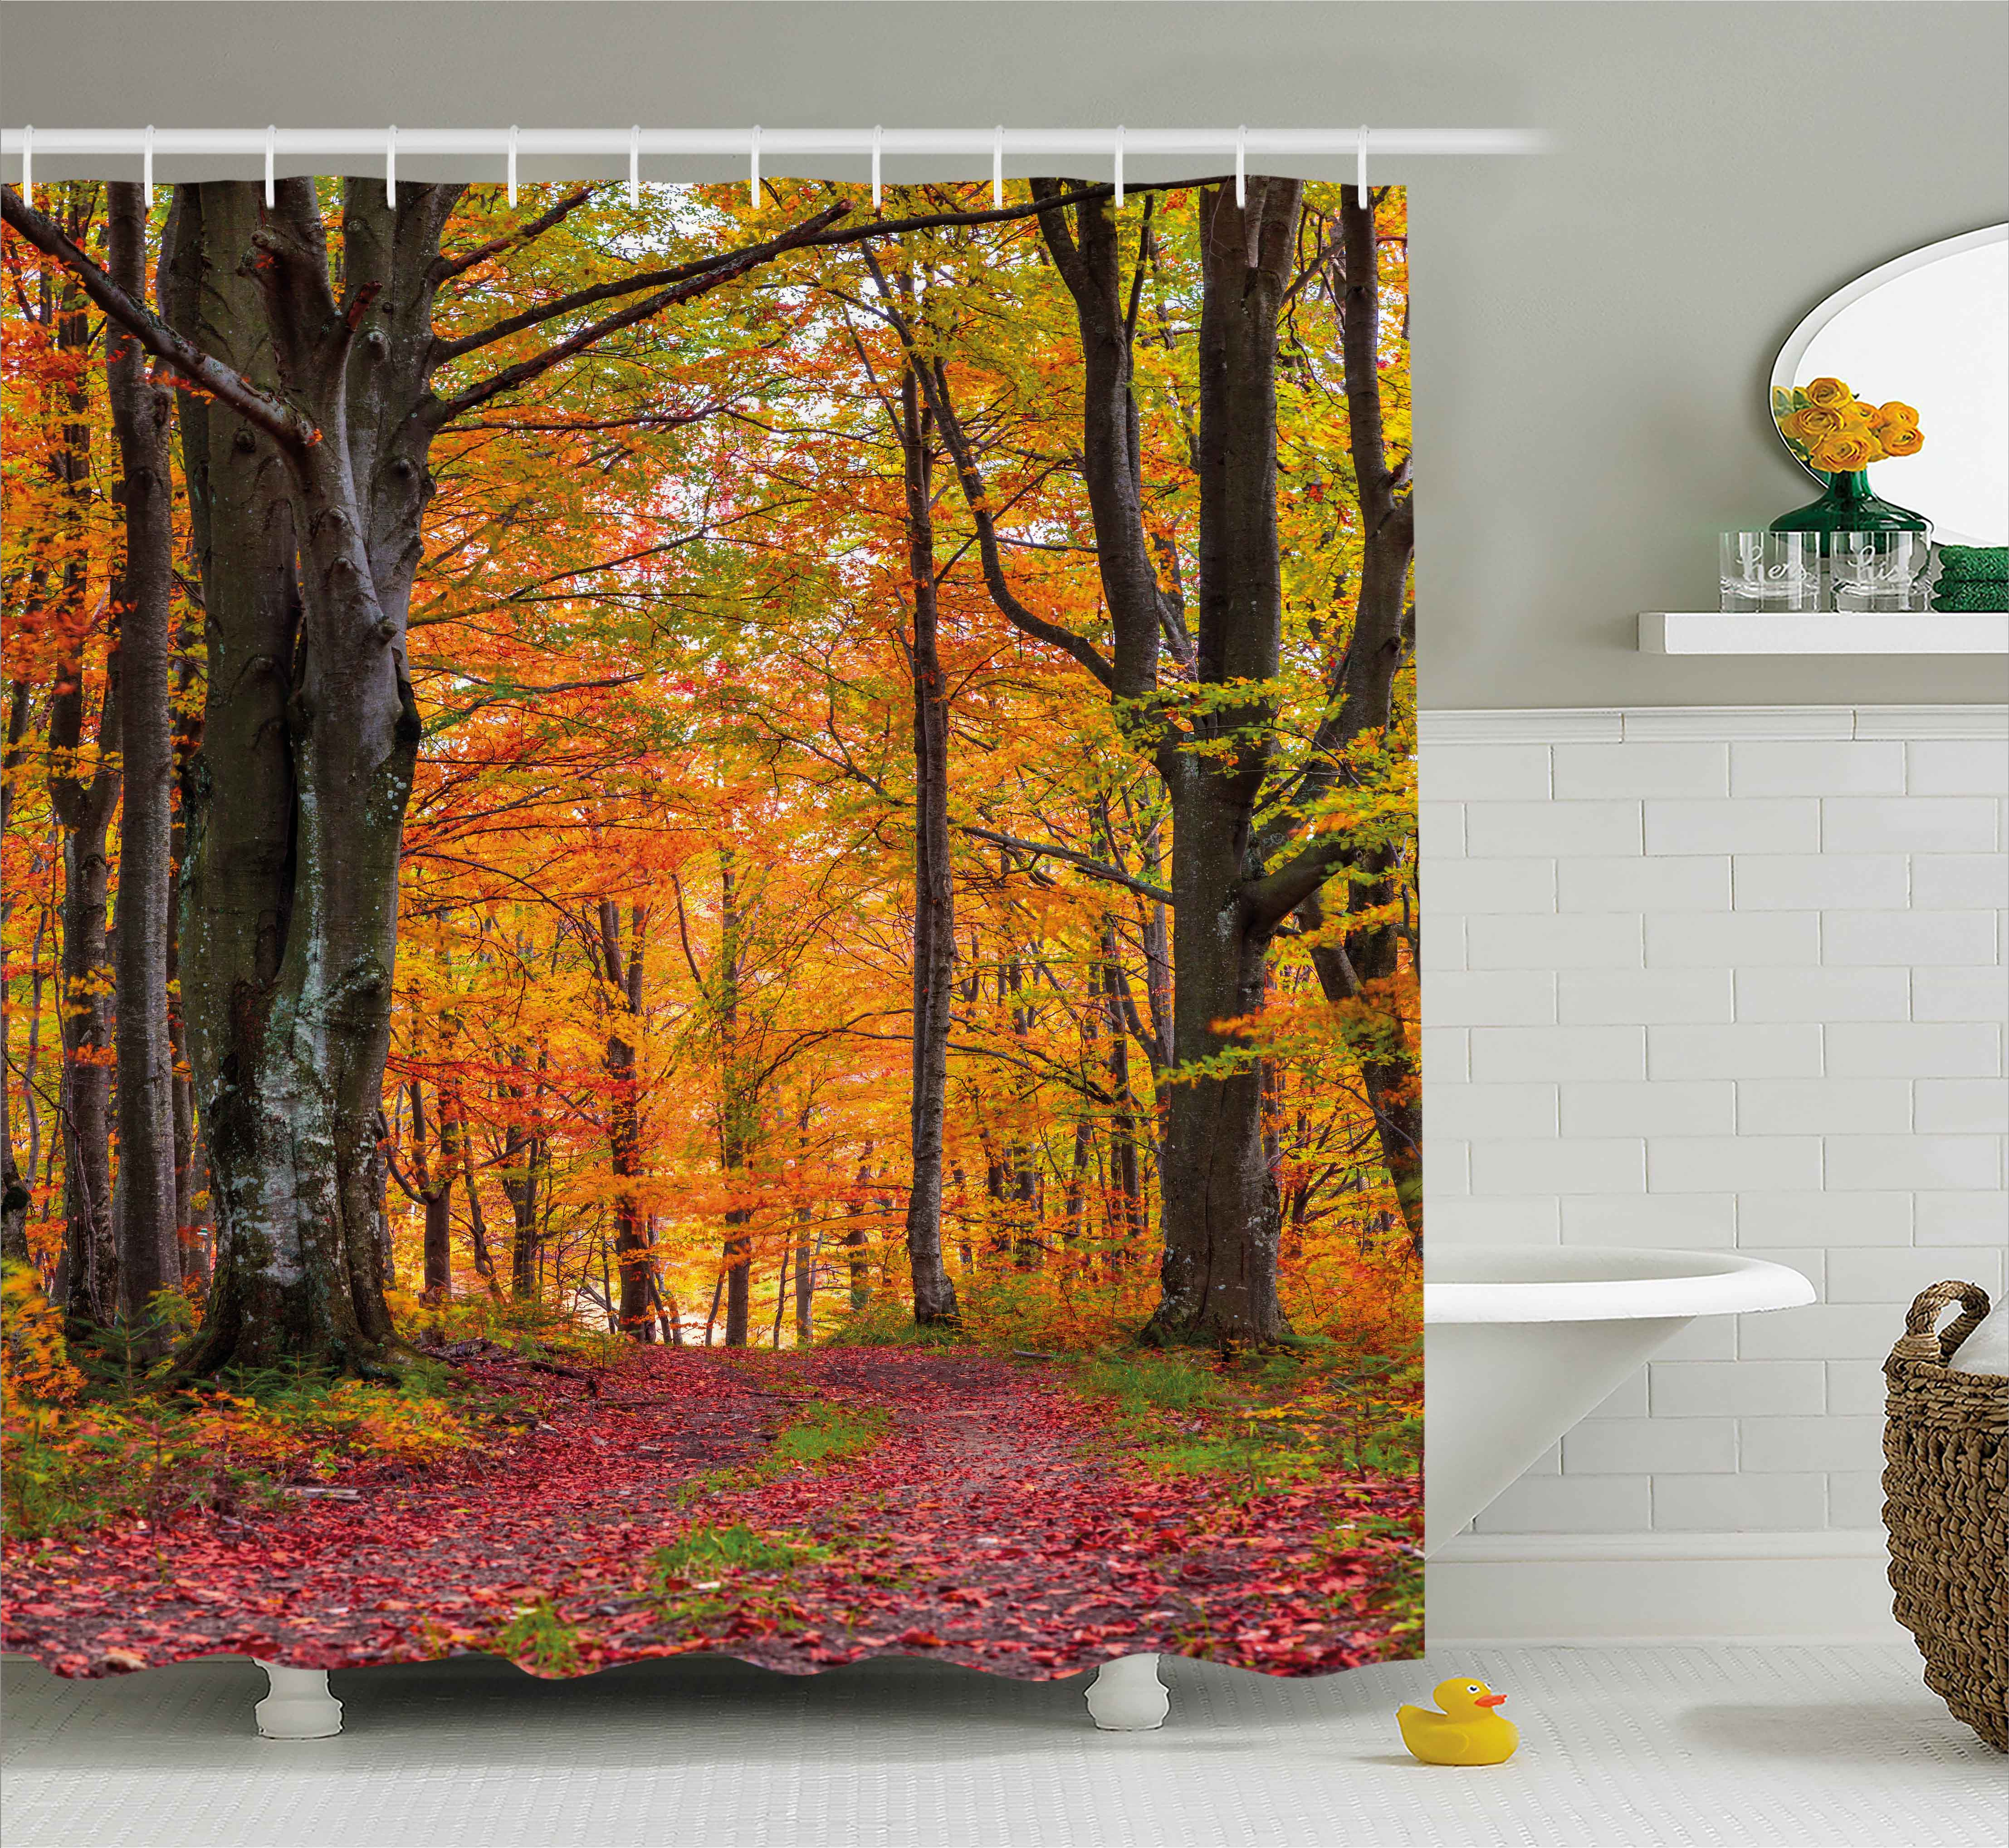 Genial Autumn Shower Curtain, Fall Forest With Shady Deciduous Trees And Faded  Leaf Magic Woodland Picture